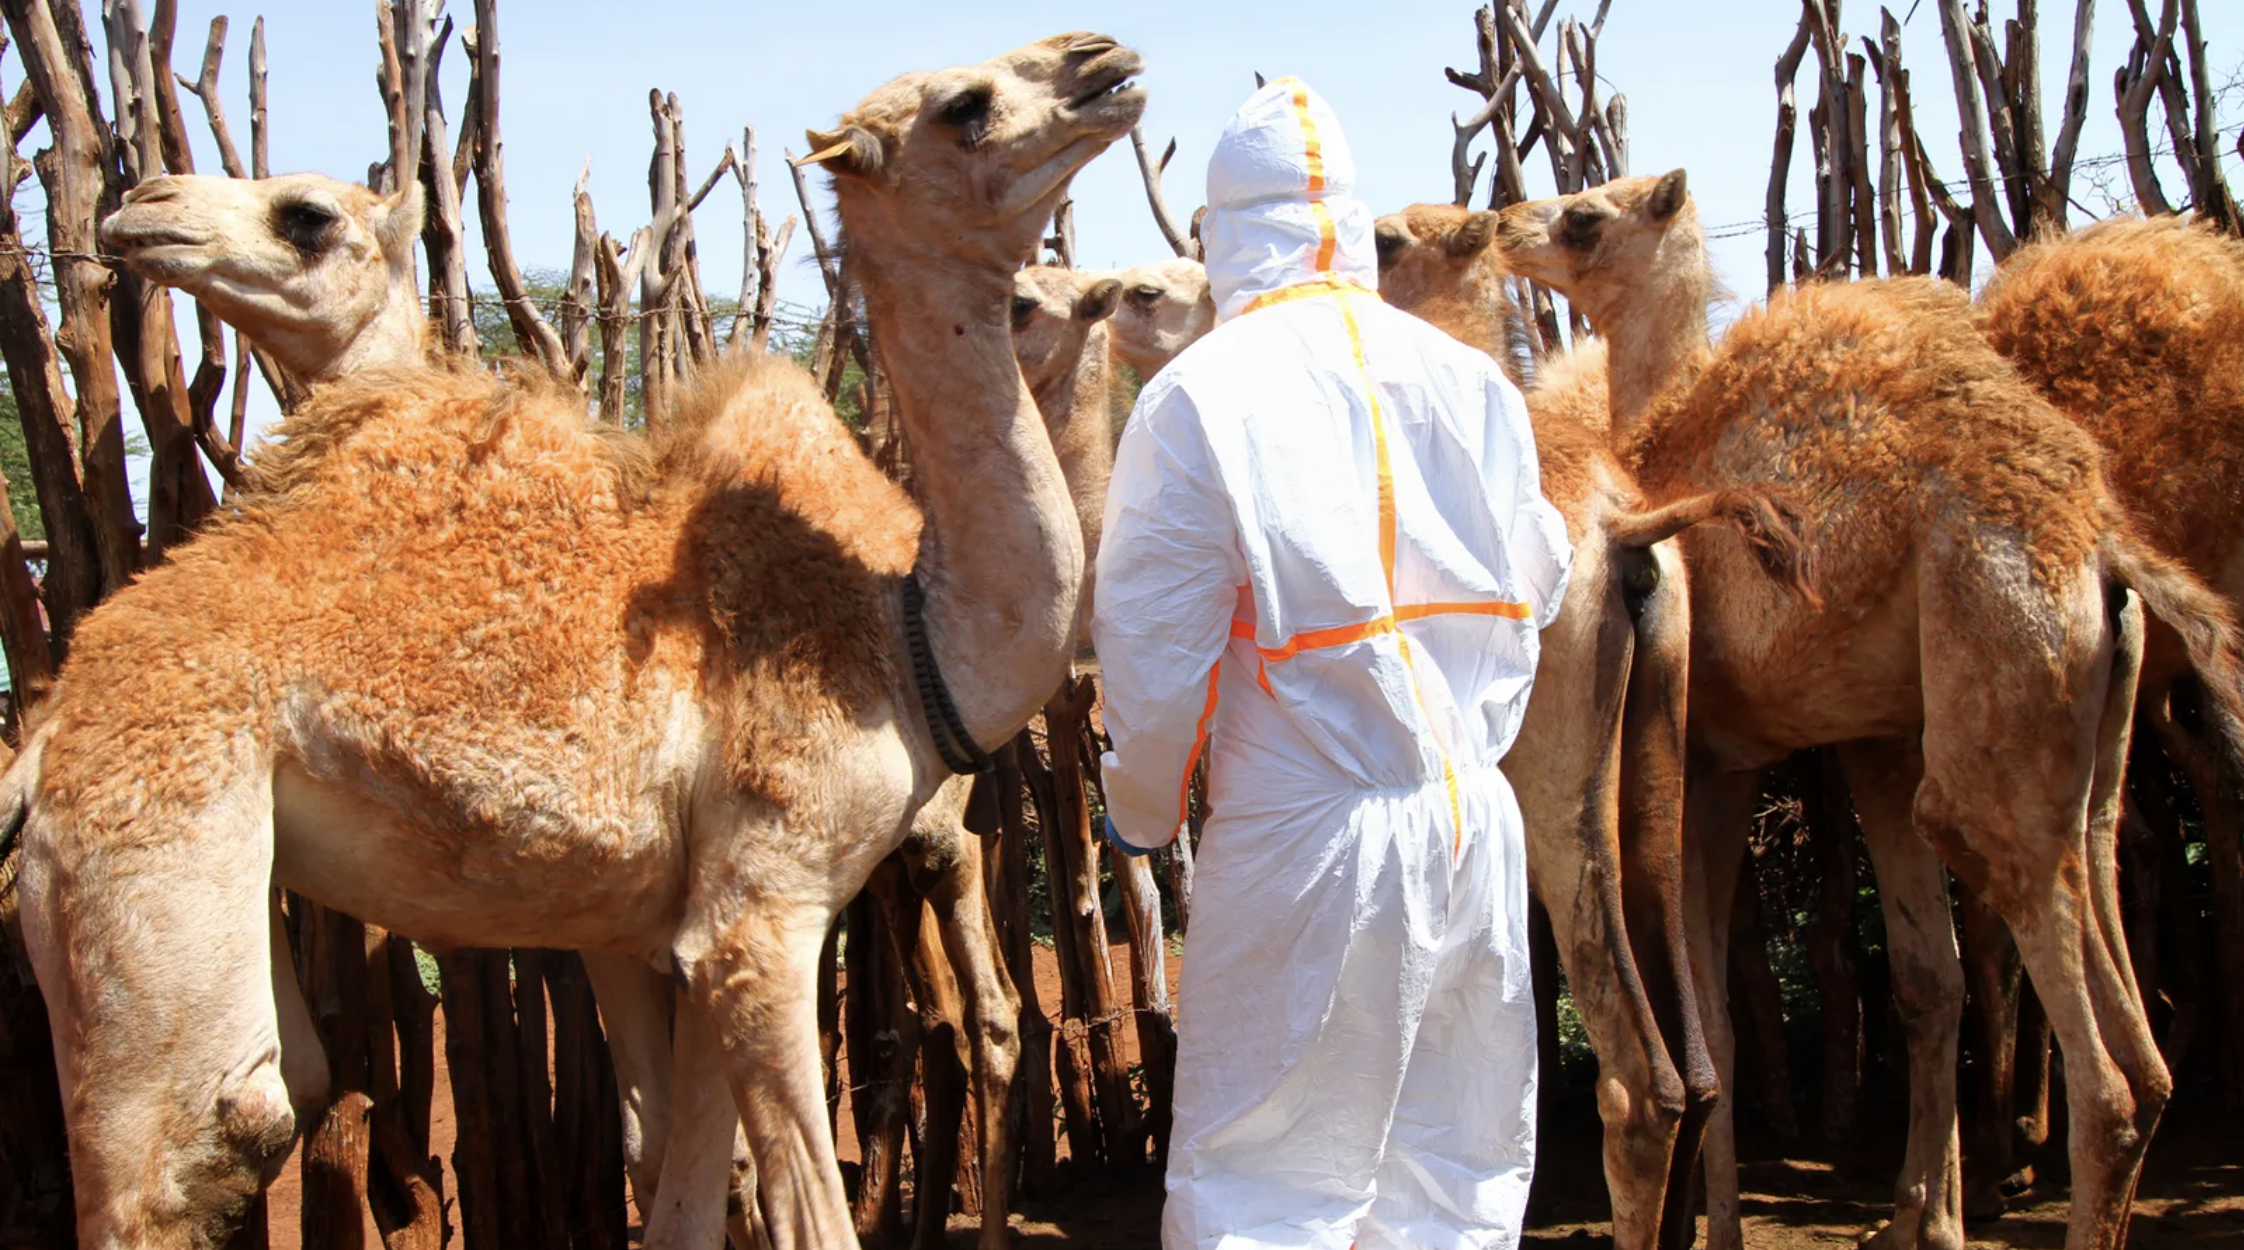 Approaching a camel to take a blood sample or swab requires a degree of caution Image byJacob Kushner. Kenya, undated.